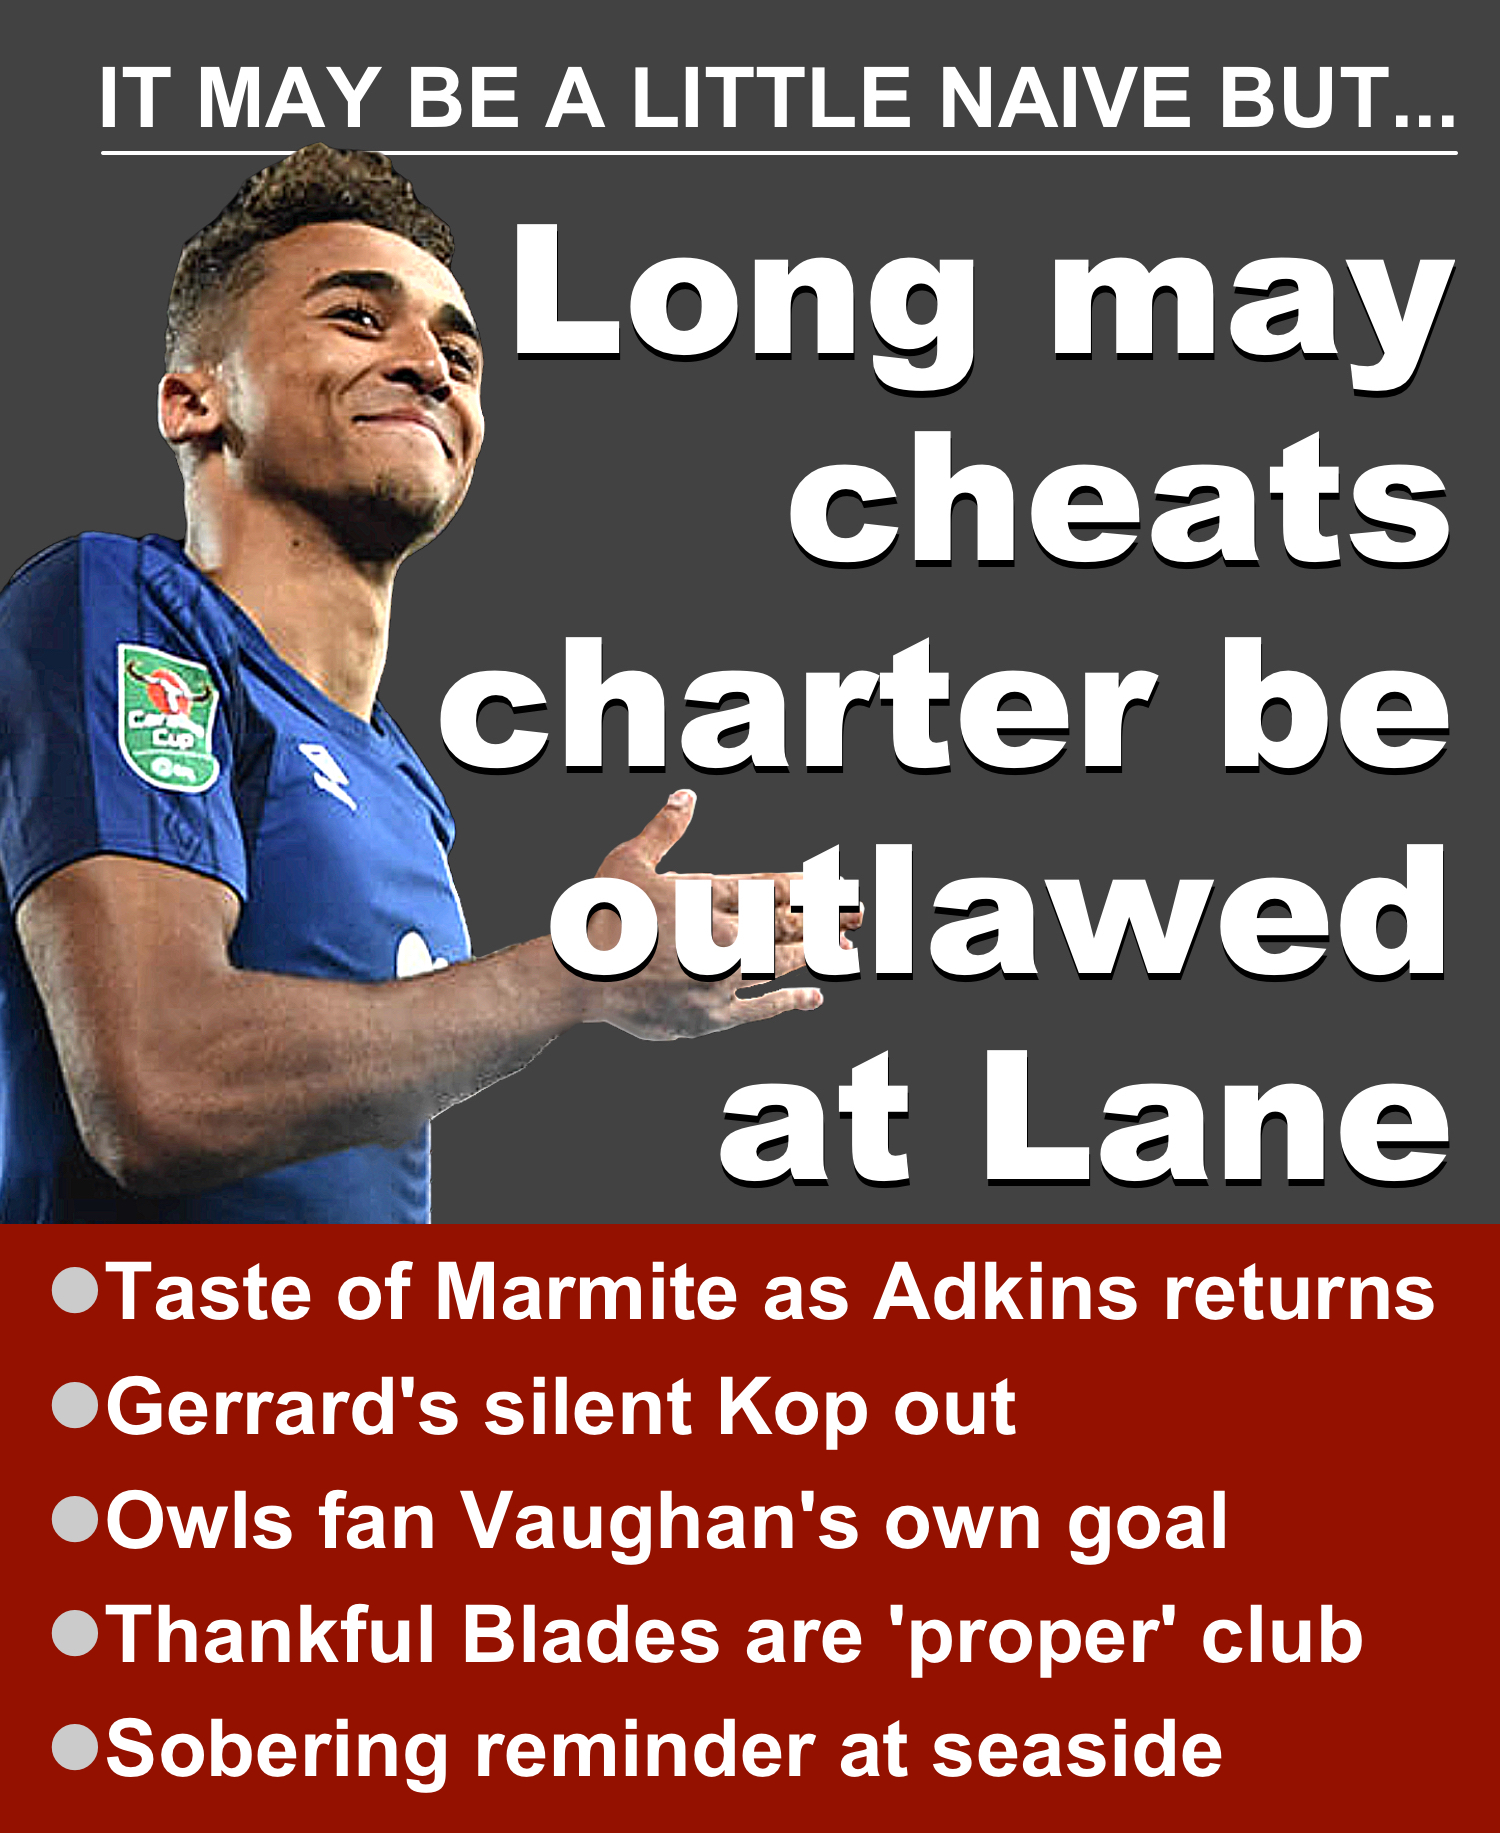 Sheffield United manager Chris Wilder's zero tolerance policy at Bramall Lane when it comes to cheating is breath of fresh air as ex-Blade Dominic Calvert-Lewin becomes latest player to court controversy in Merseyside derby